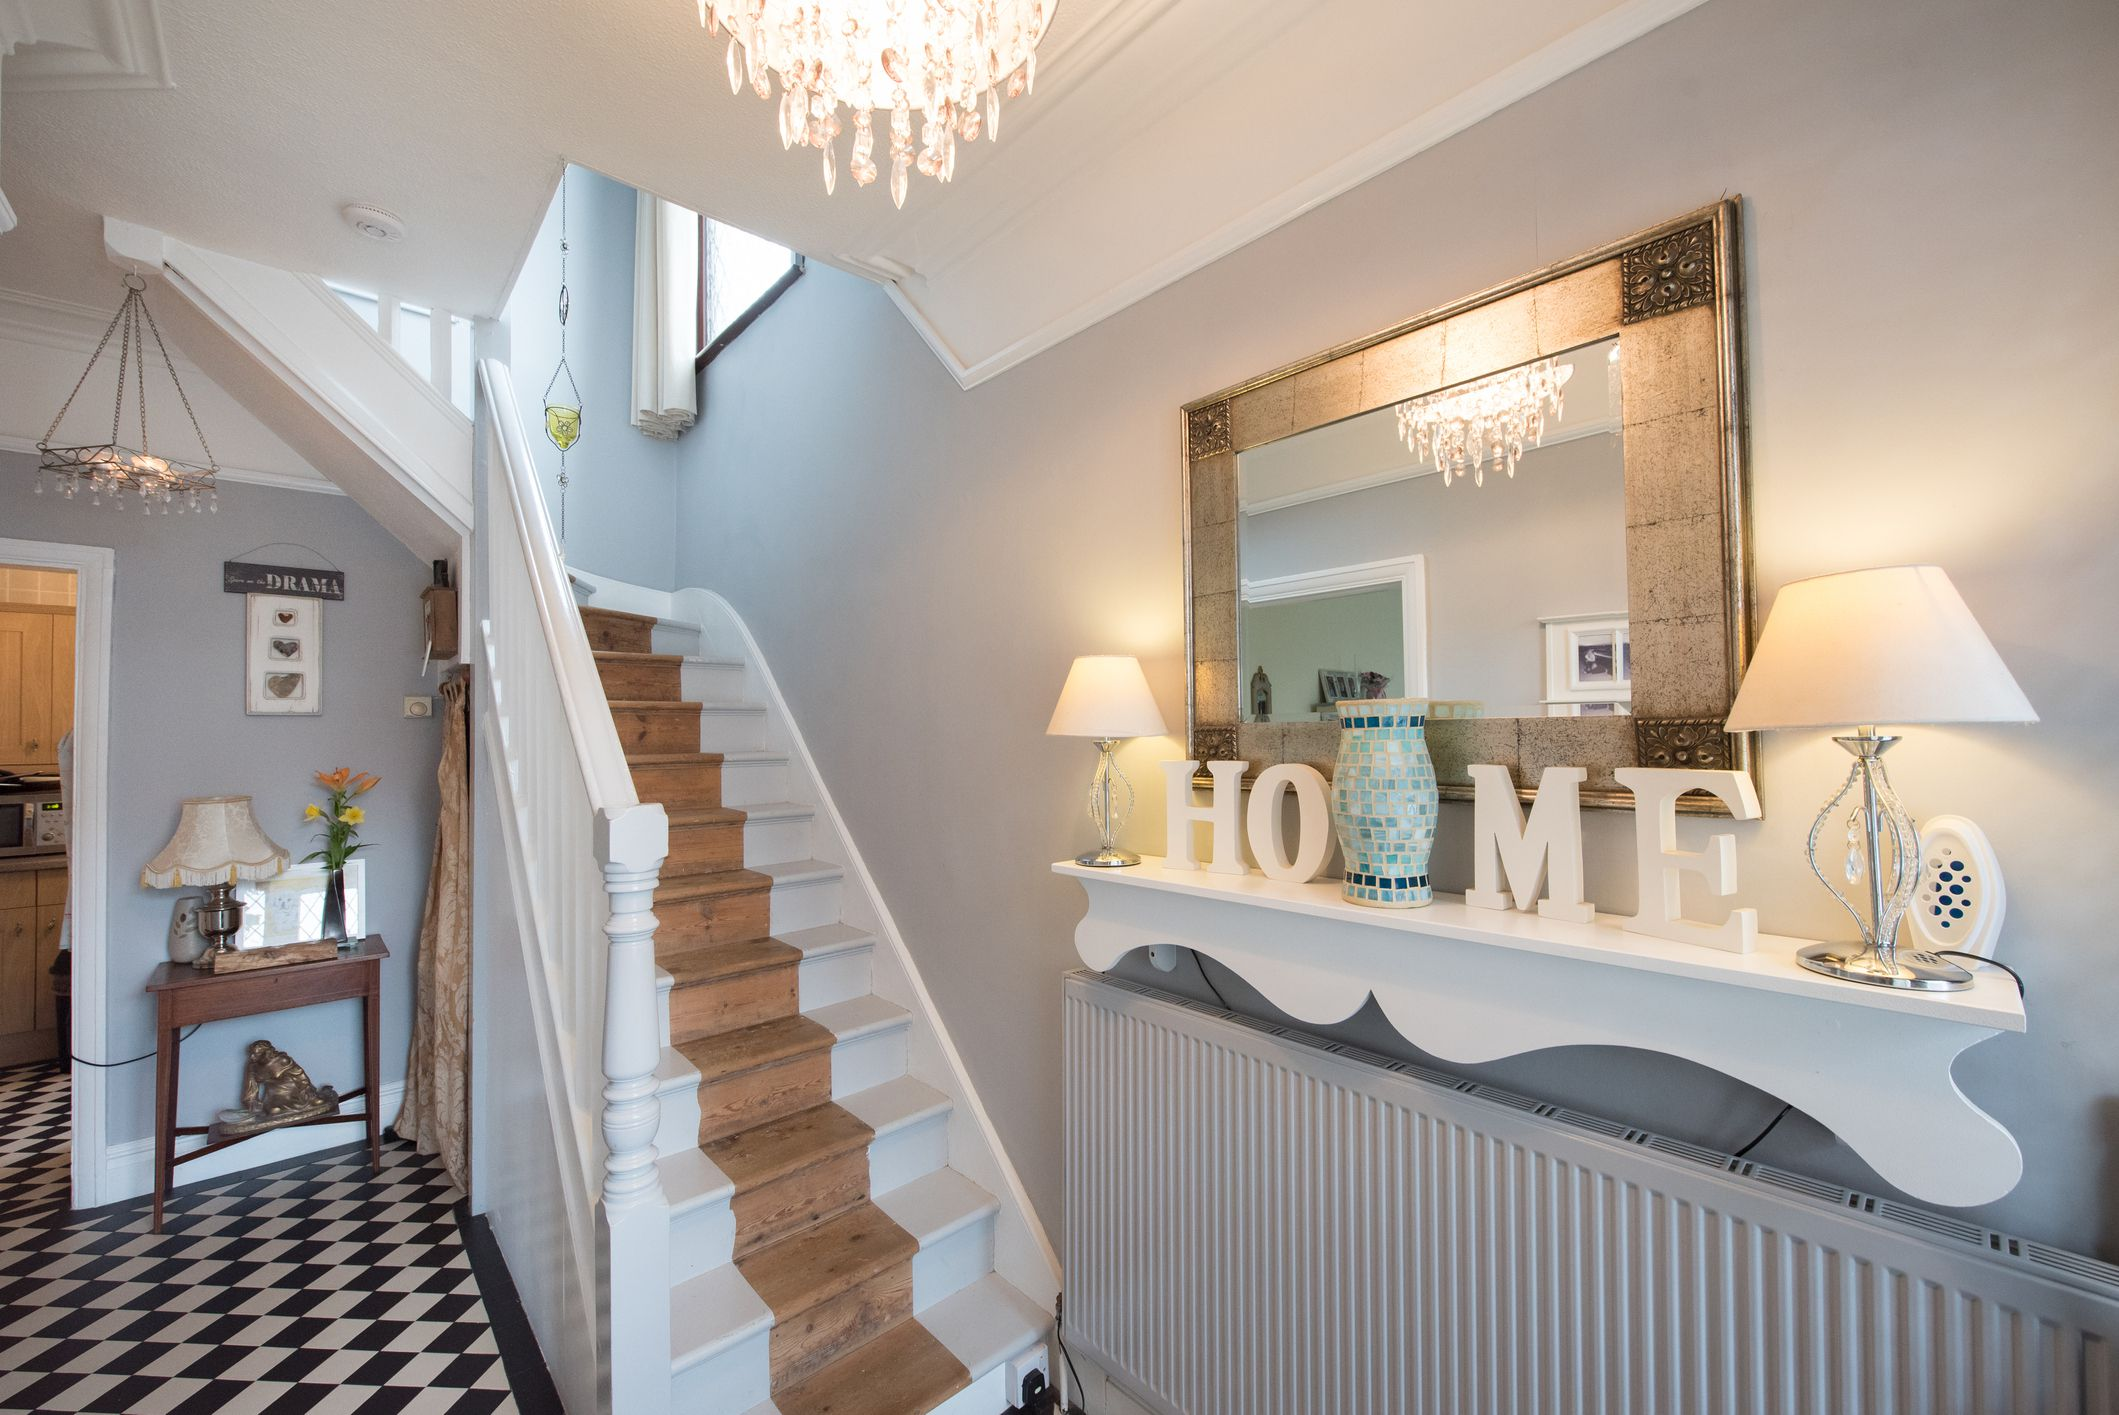 decorative indoor stair railings decorative indoor stair.htm 7 overlays for staircase treads  7 overlays for staircase treads